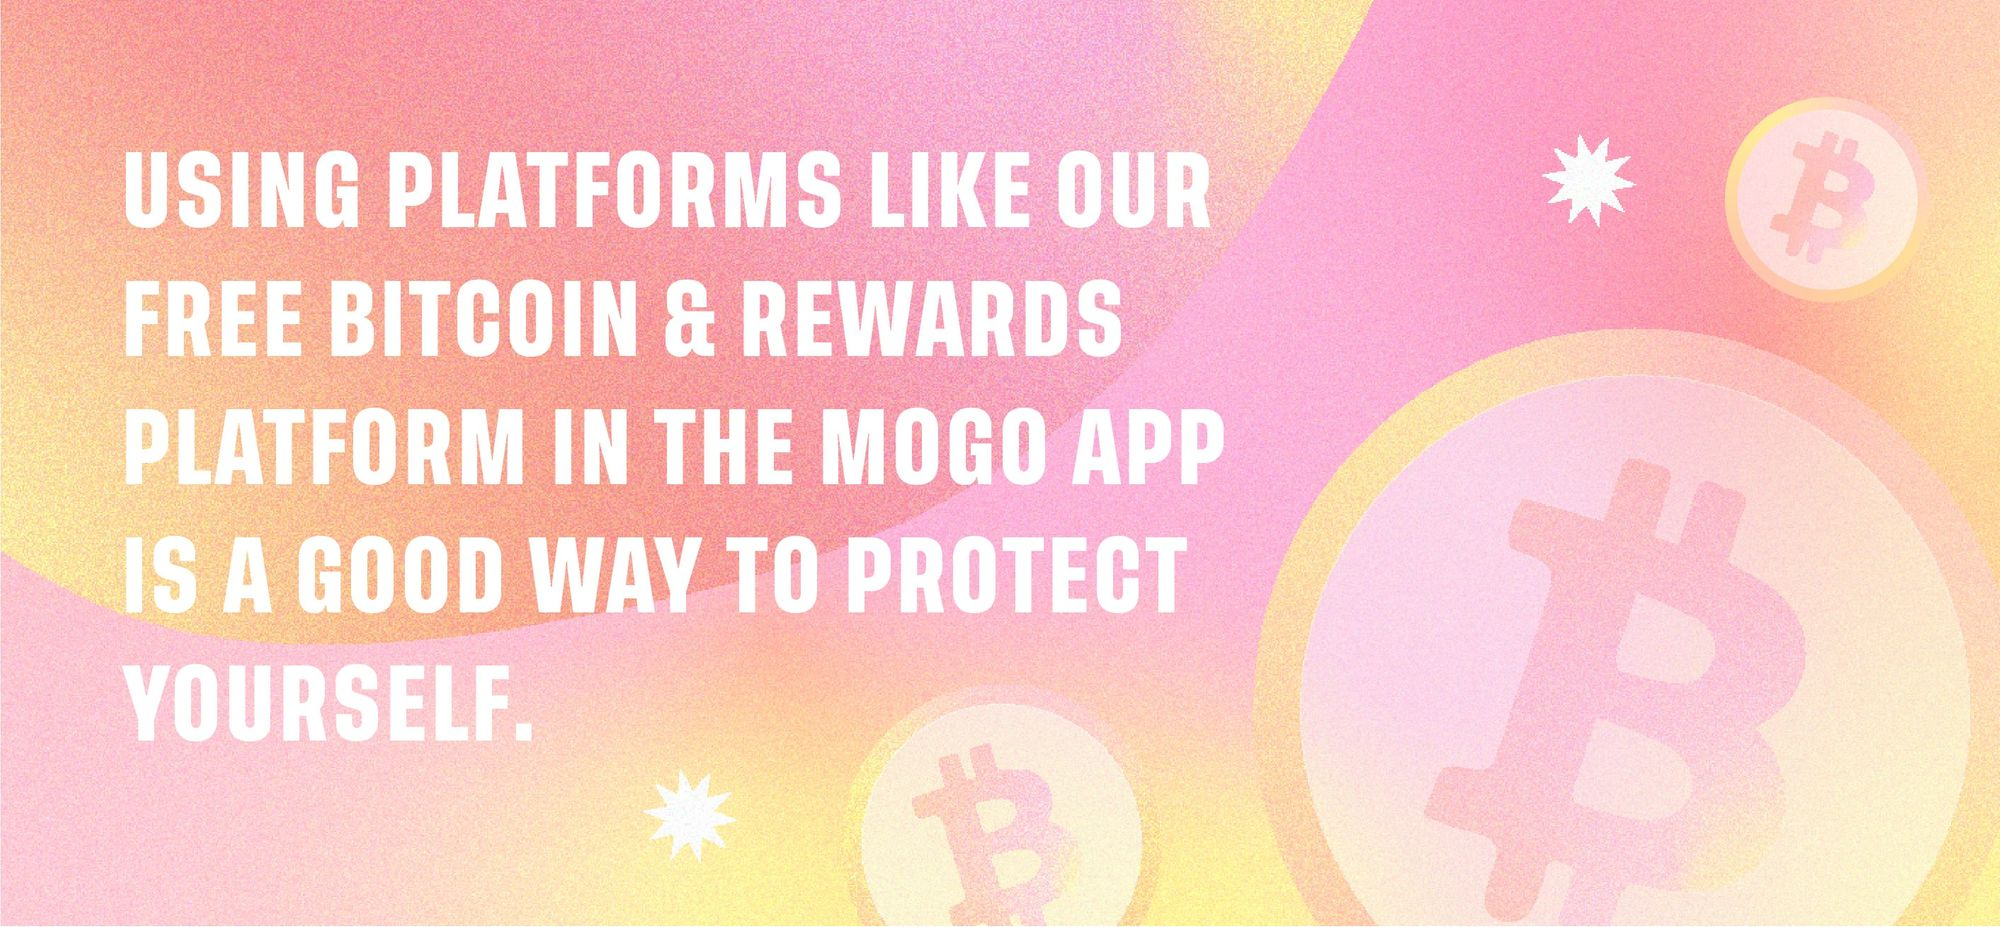 Using Platforms Like Our Free Bitcoin & Rewards Platform In The Mogo App Is A good Way To Protect Yourself